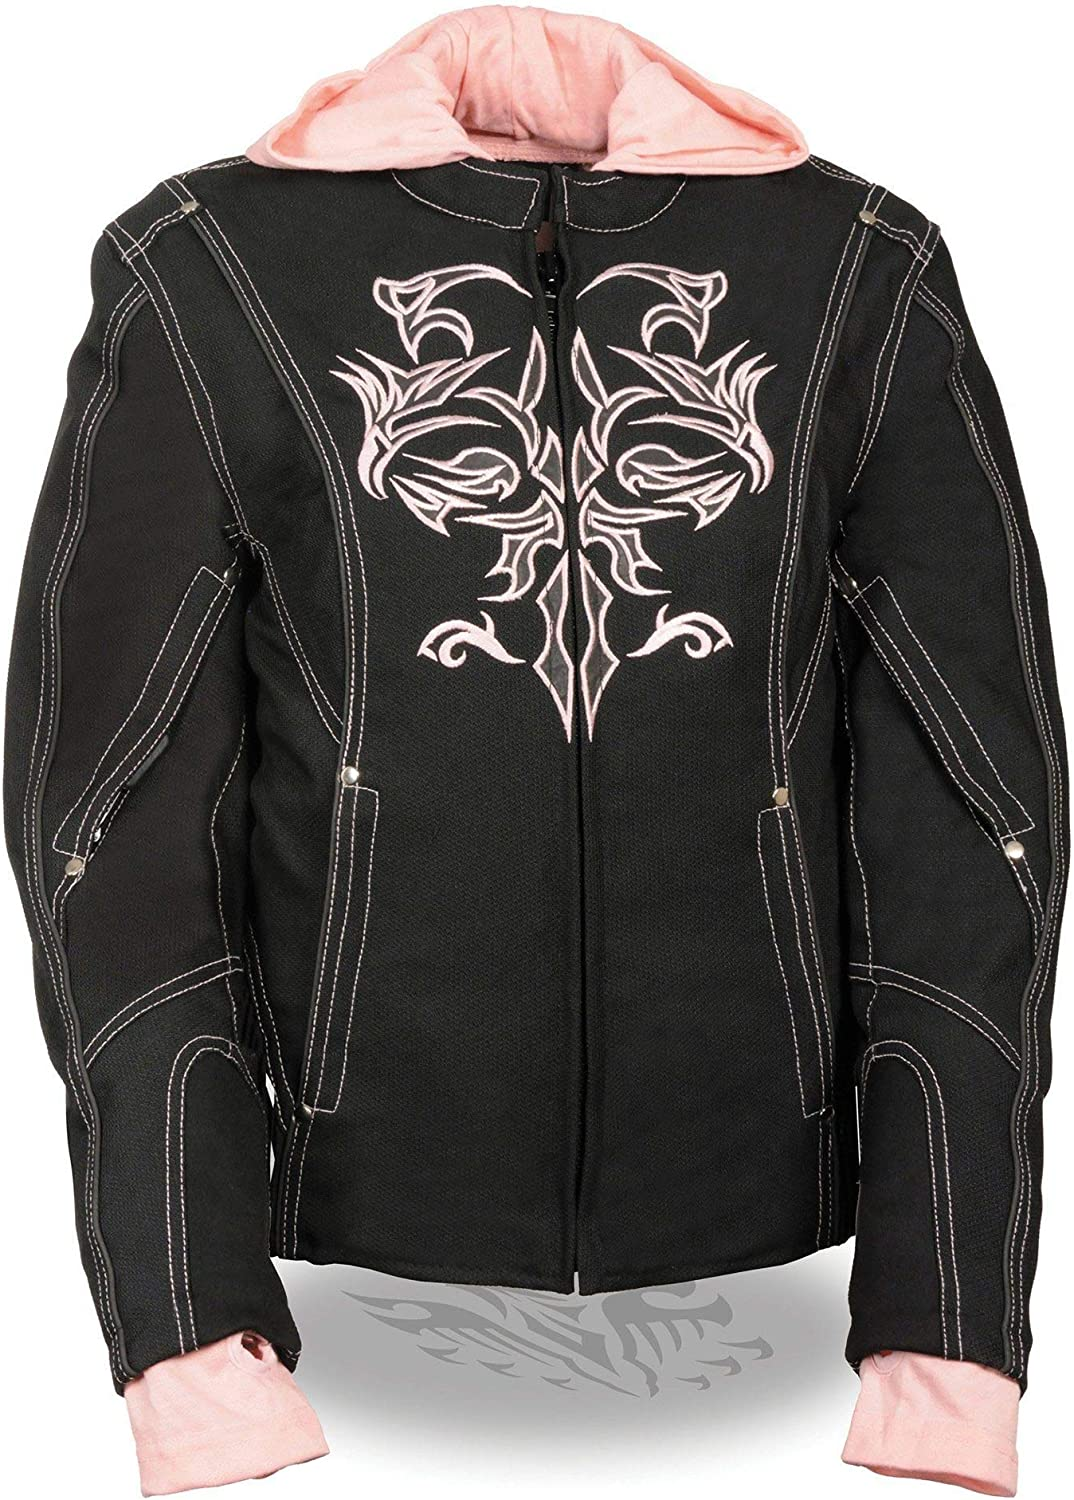 NexGen SH1966 Don't miss the campaign Ladies Black and Pink T with 3 4 Reflective Clearance SALE Limited time Jacket